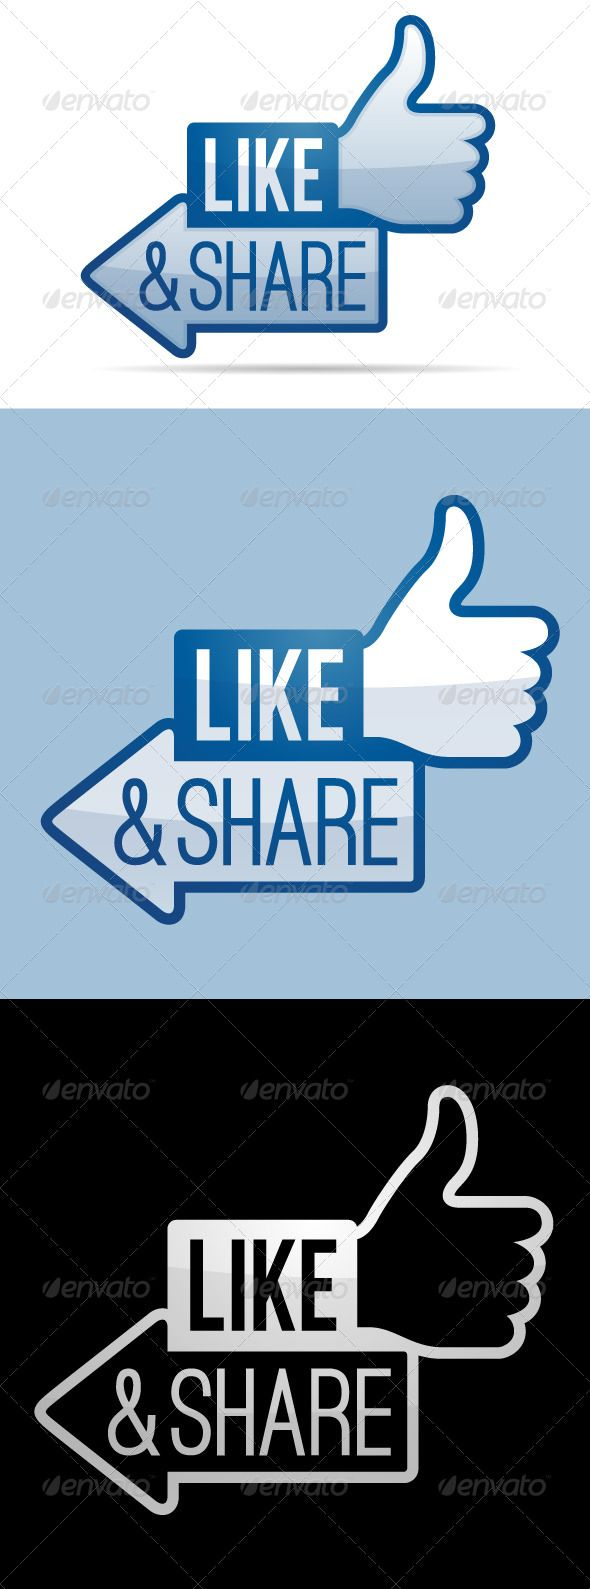 Like and Share Thumbs Up by filolif Like and share thumbs up symbol.